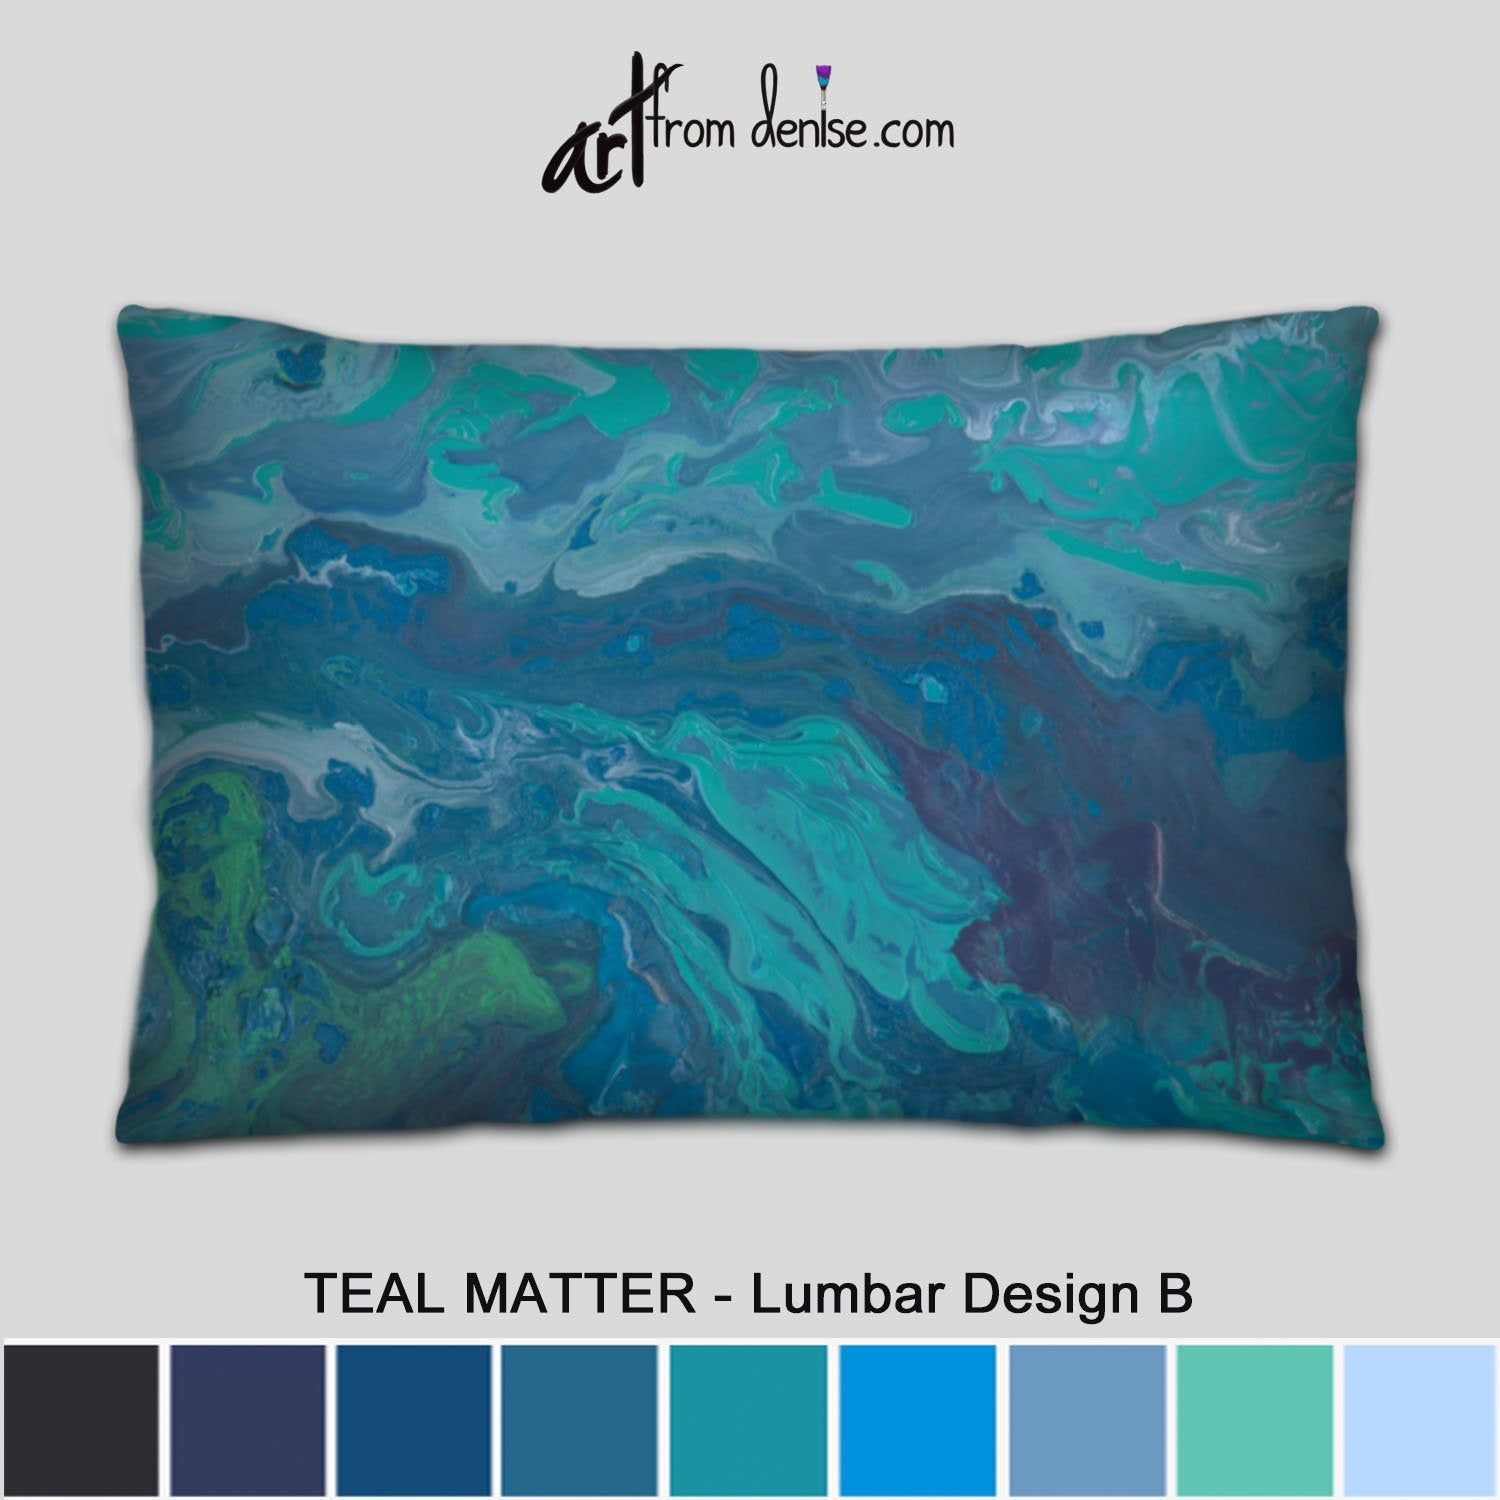 Green And Blue Lumbar Support Pillow Abstract Throw Pillows Etsy Couch Pillow Sets Throw Pillows Bed Large Couch Pillows